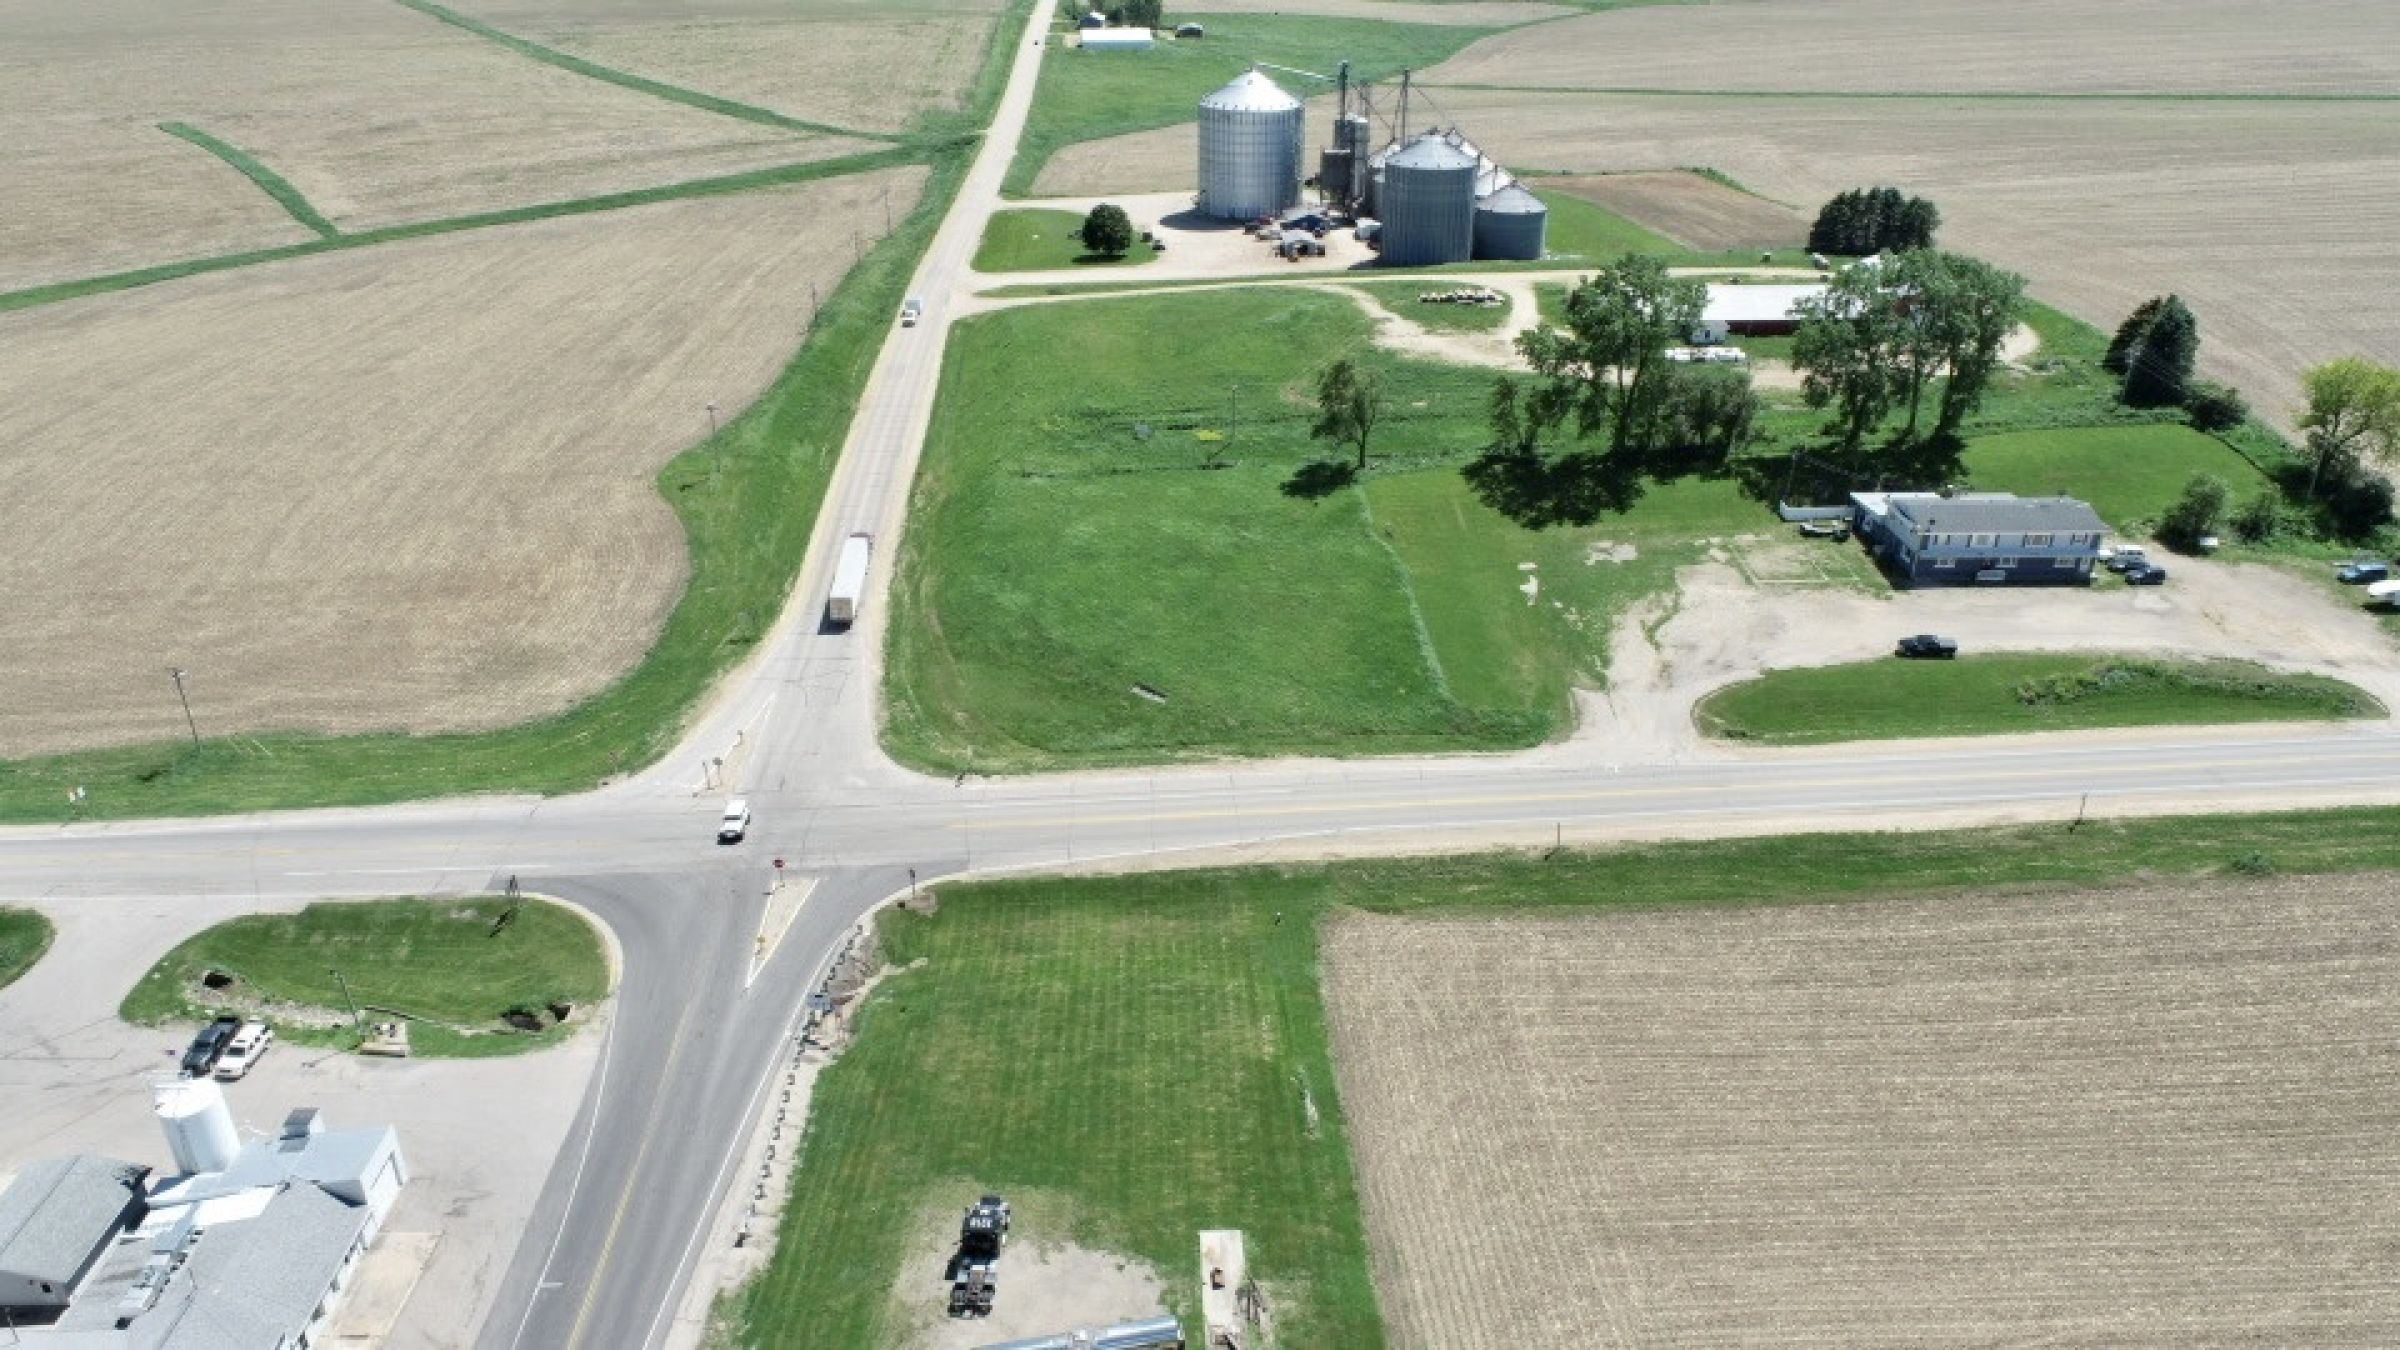 land-commercial-lafayette-county-wisconsin-1-acres-listing-number-15560-4-2021-05-28-185523.jpg